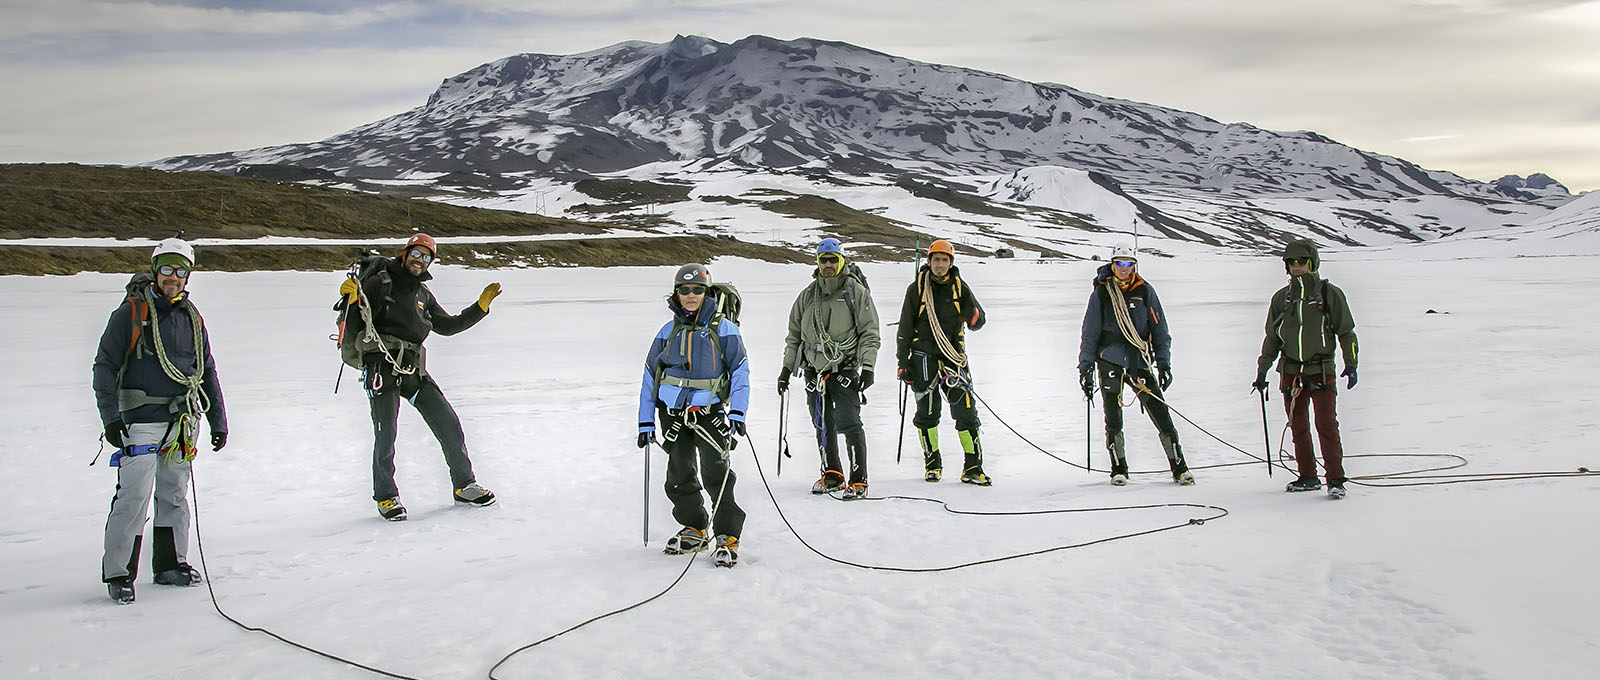 RAFTING Y TRAVESIAS EN KAYAKS